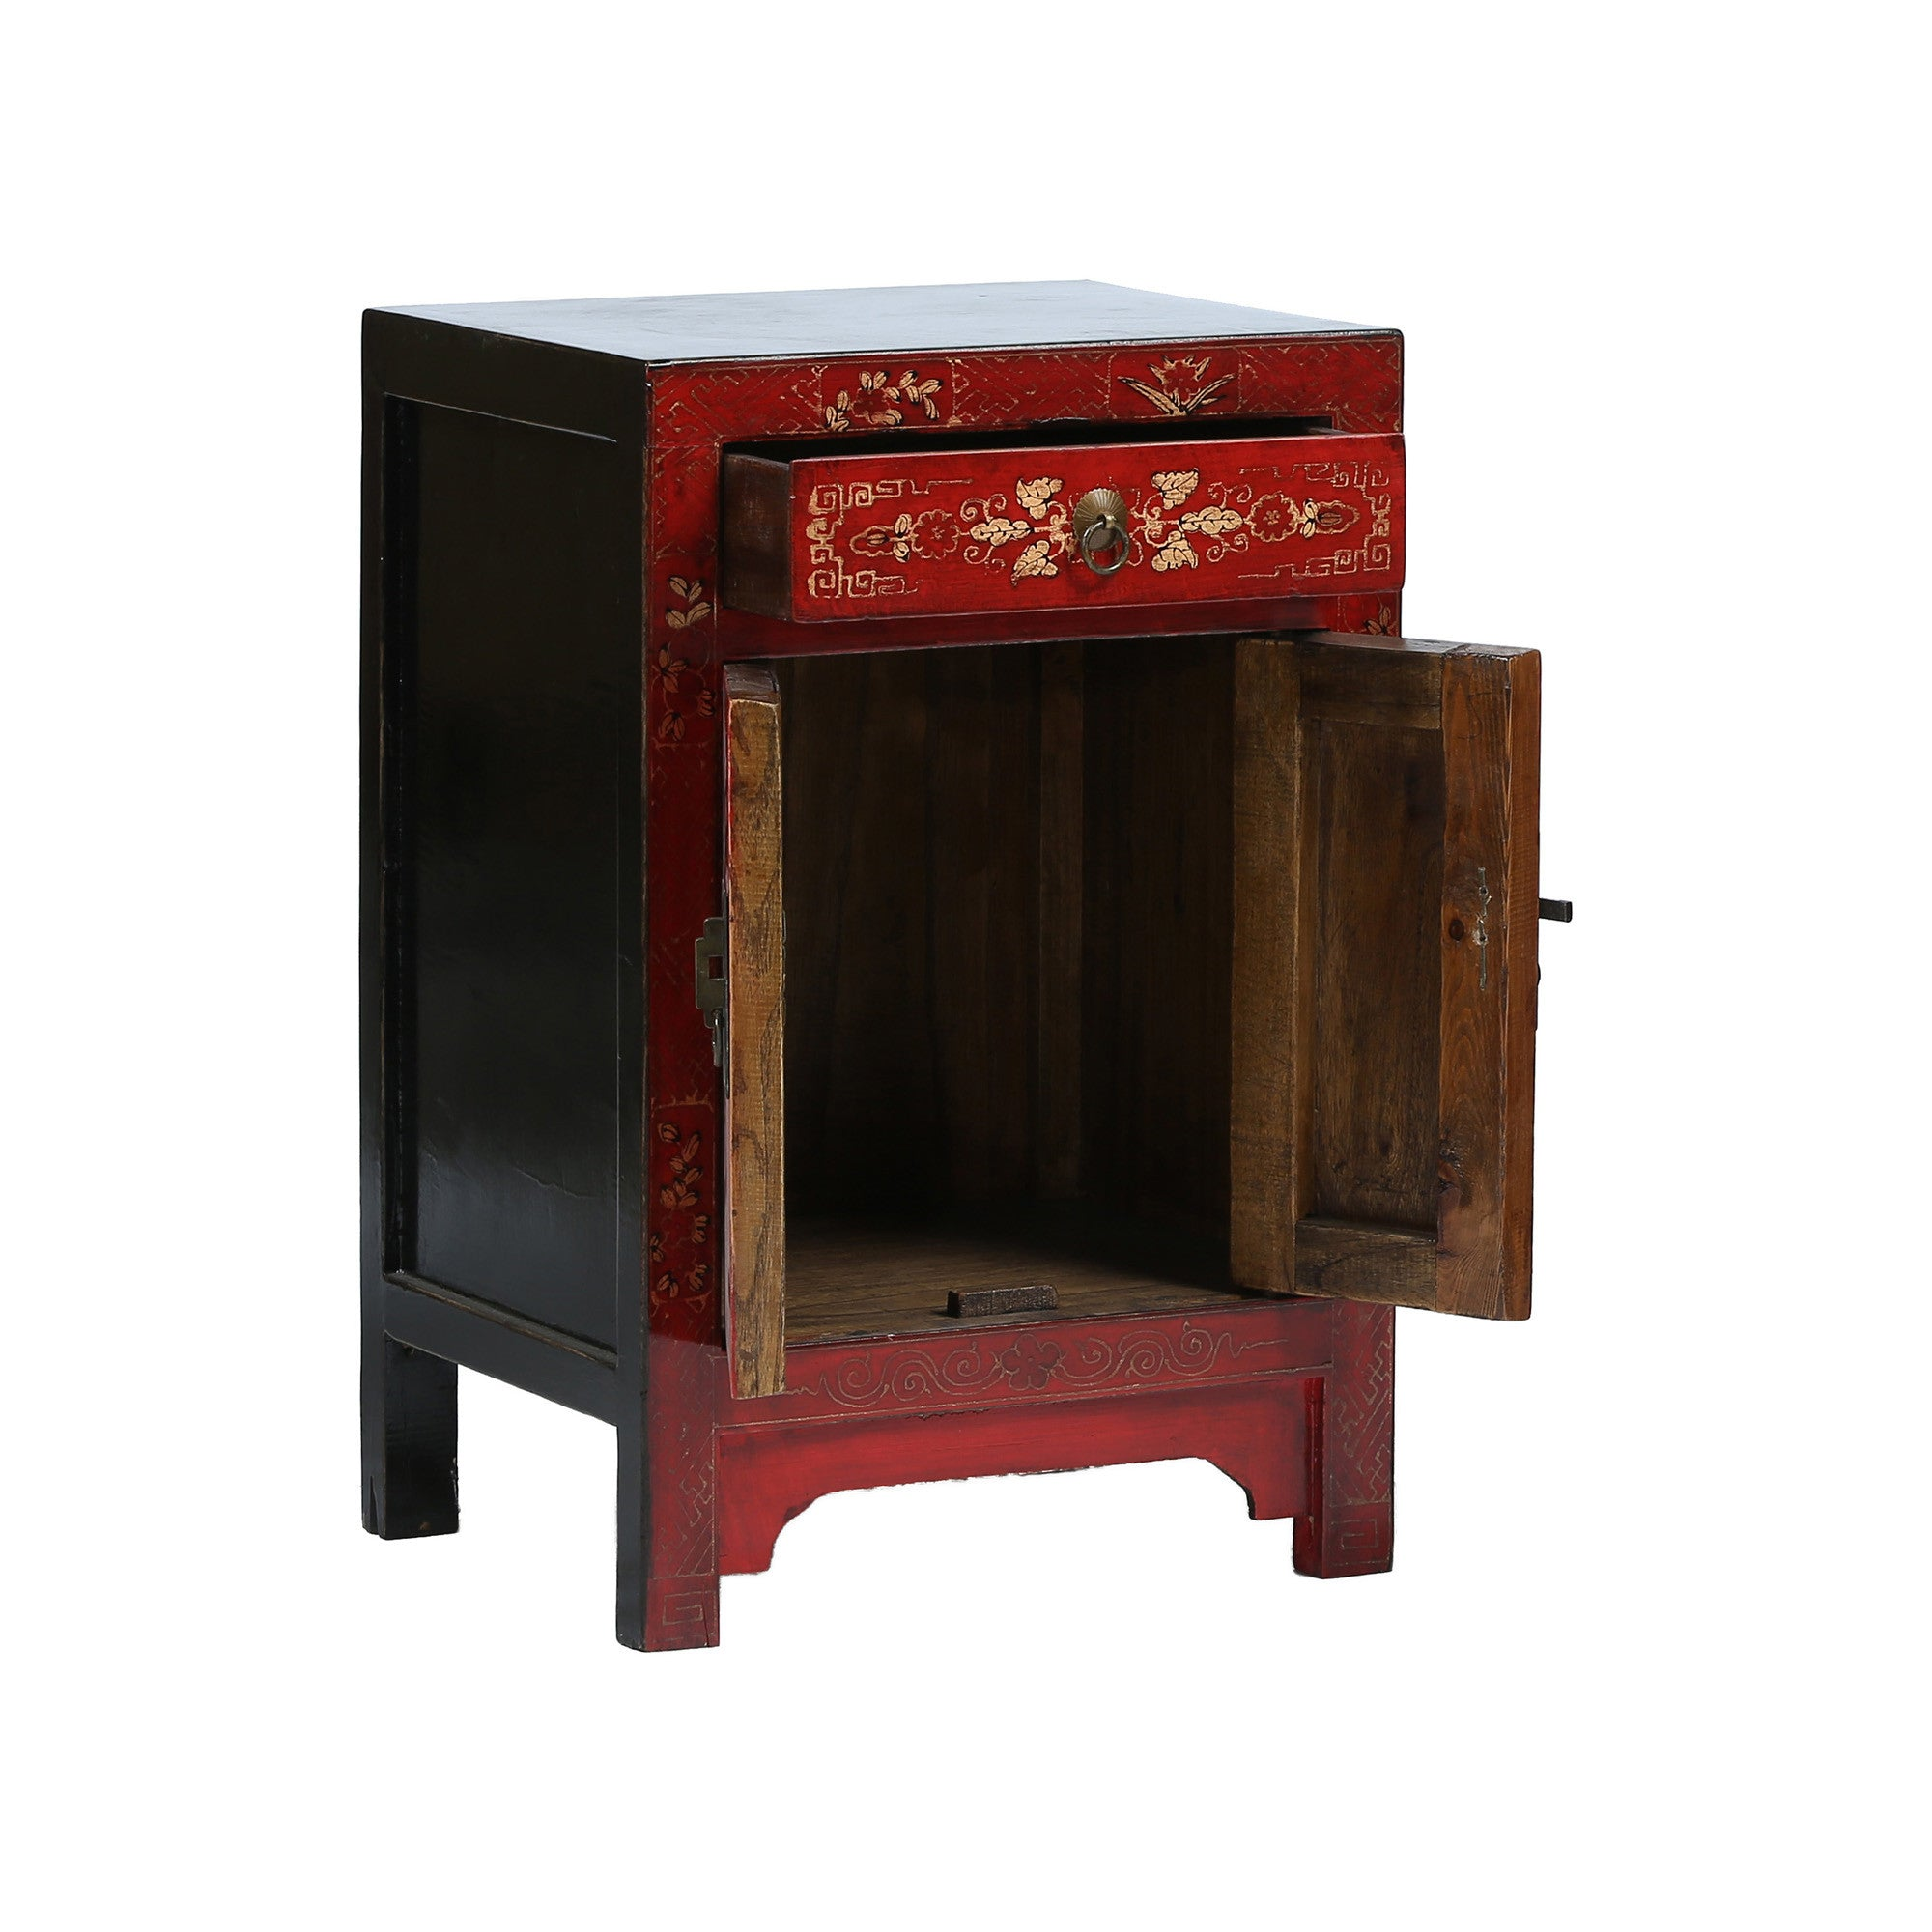 Red Chinese Bedside Cabinet - Butterflies drawer and door open